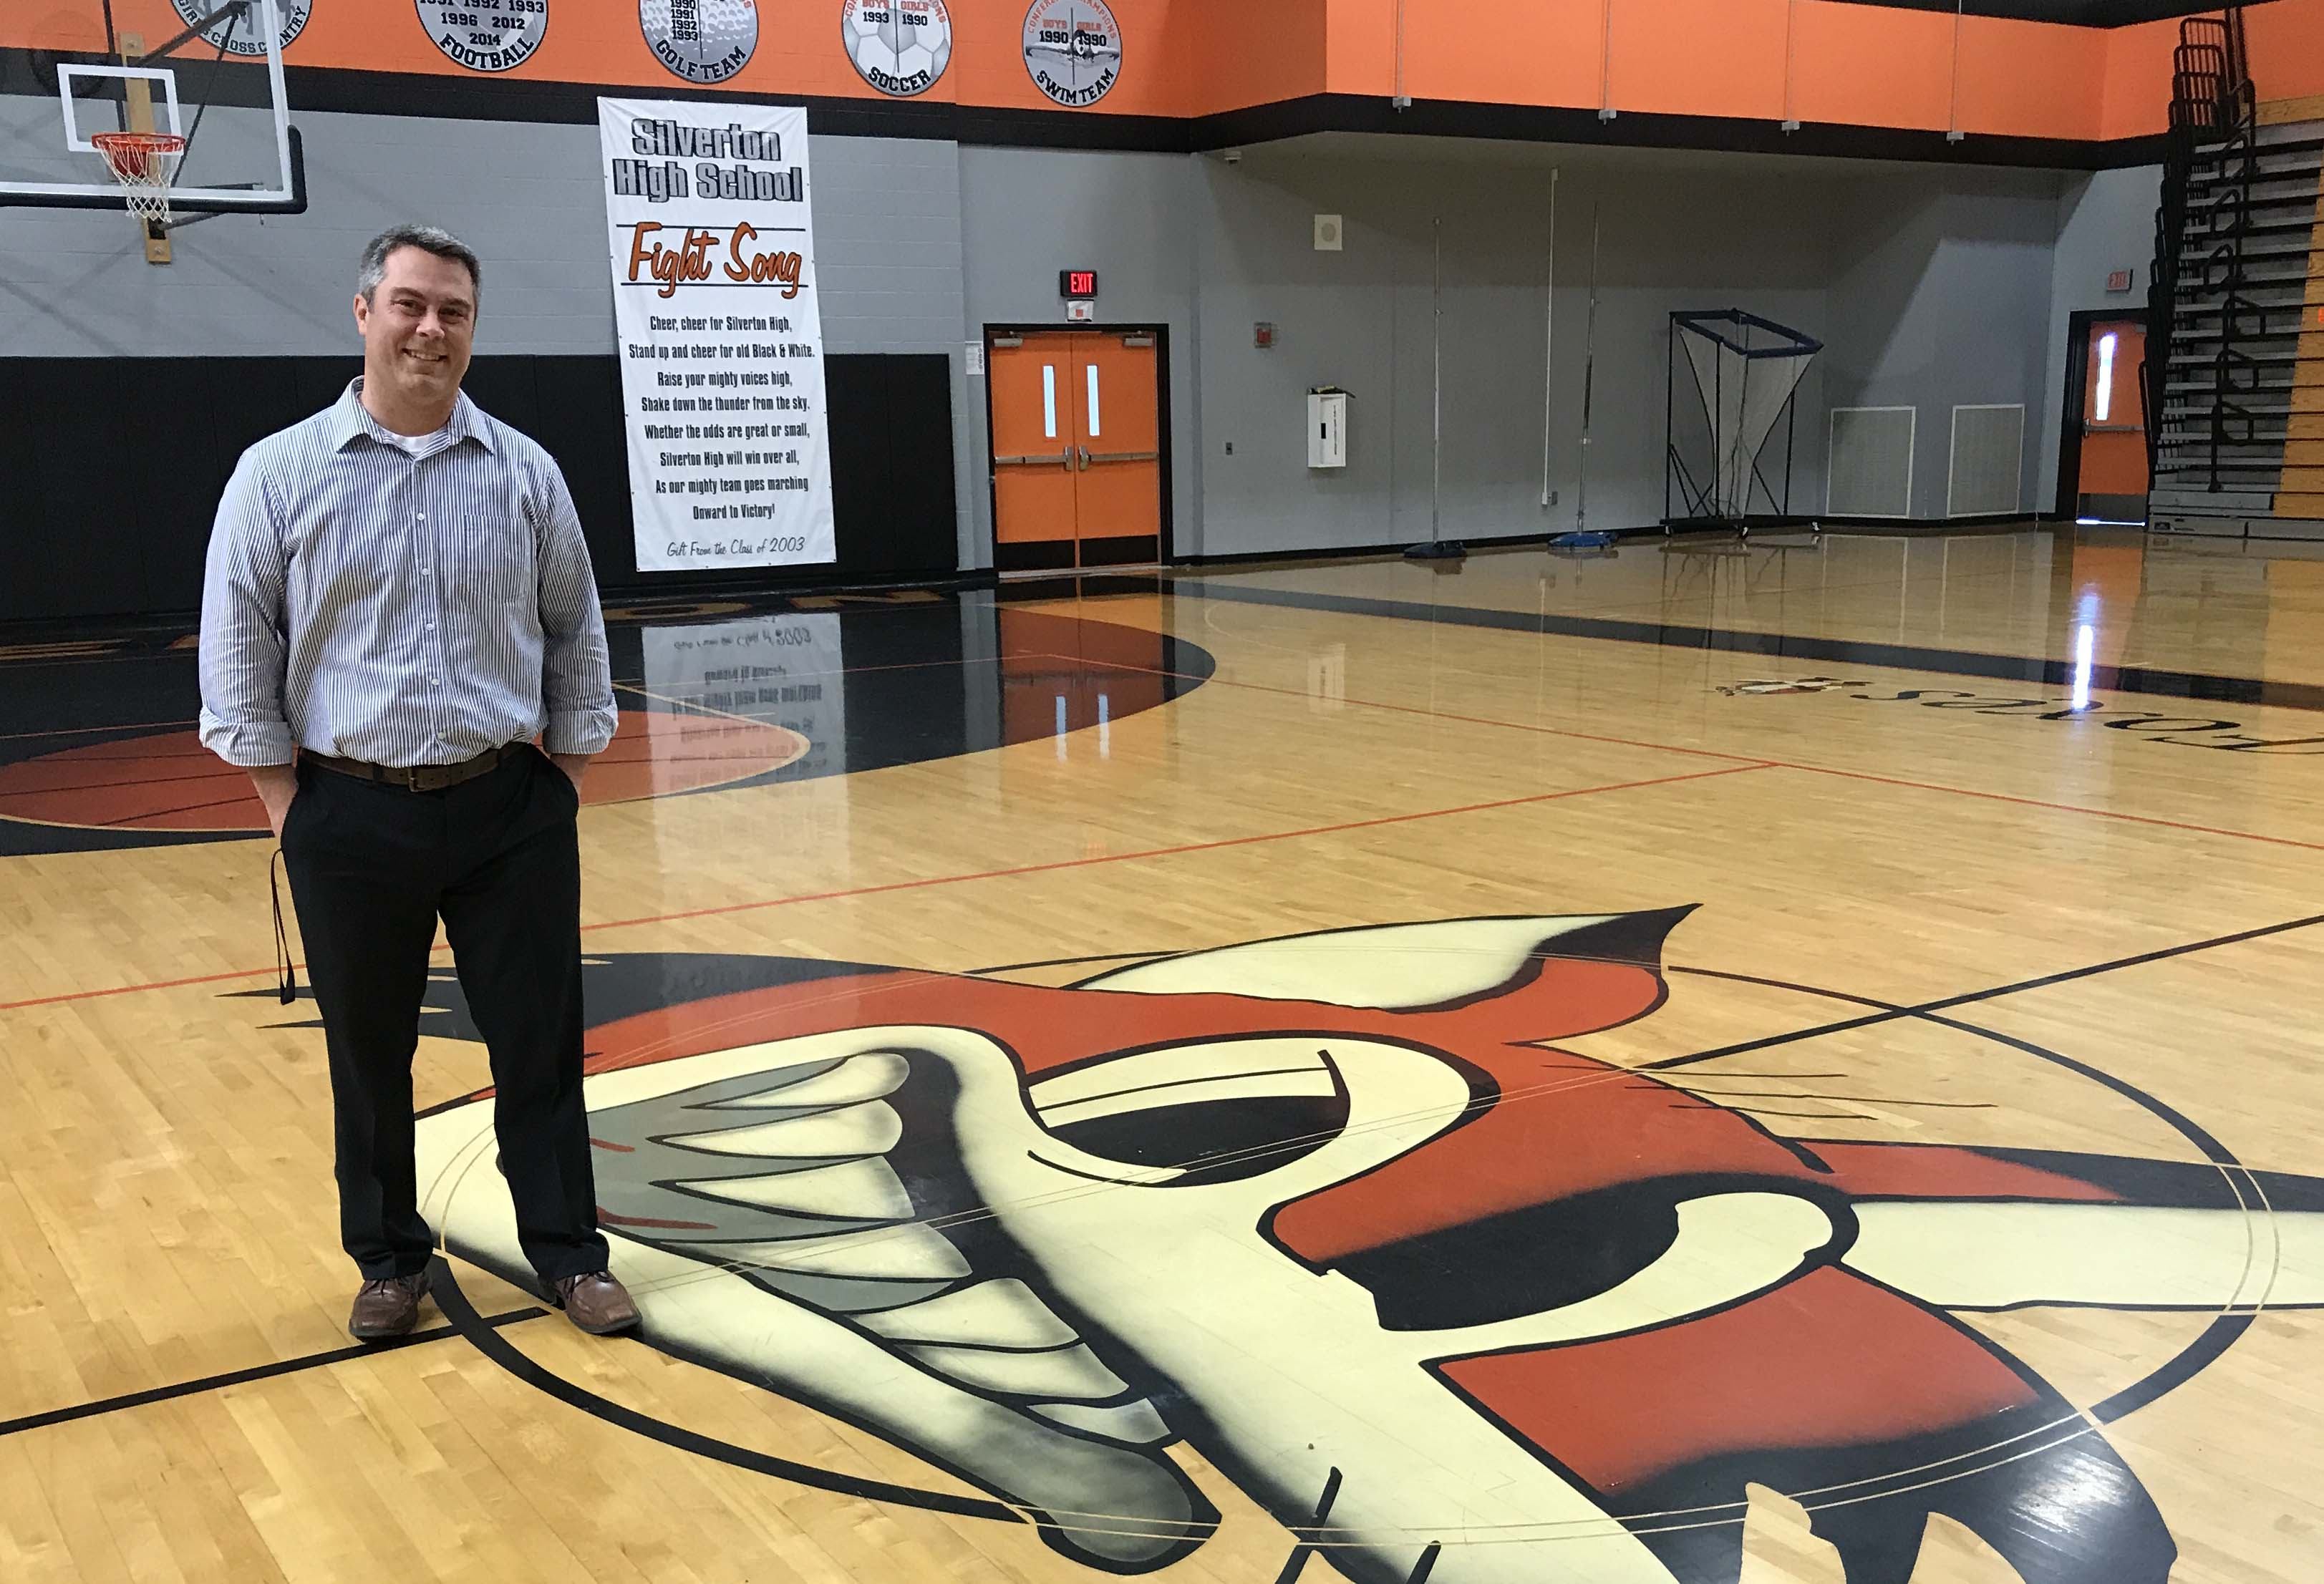 Wade Lockett stands near the fox at center court in the main SHS gym